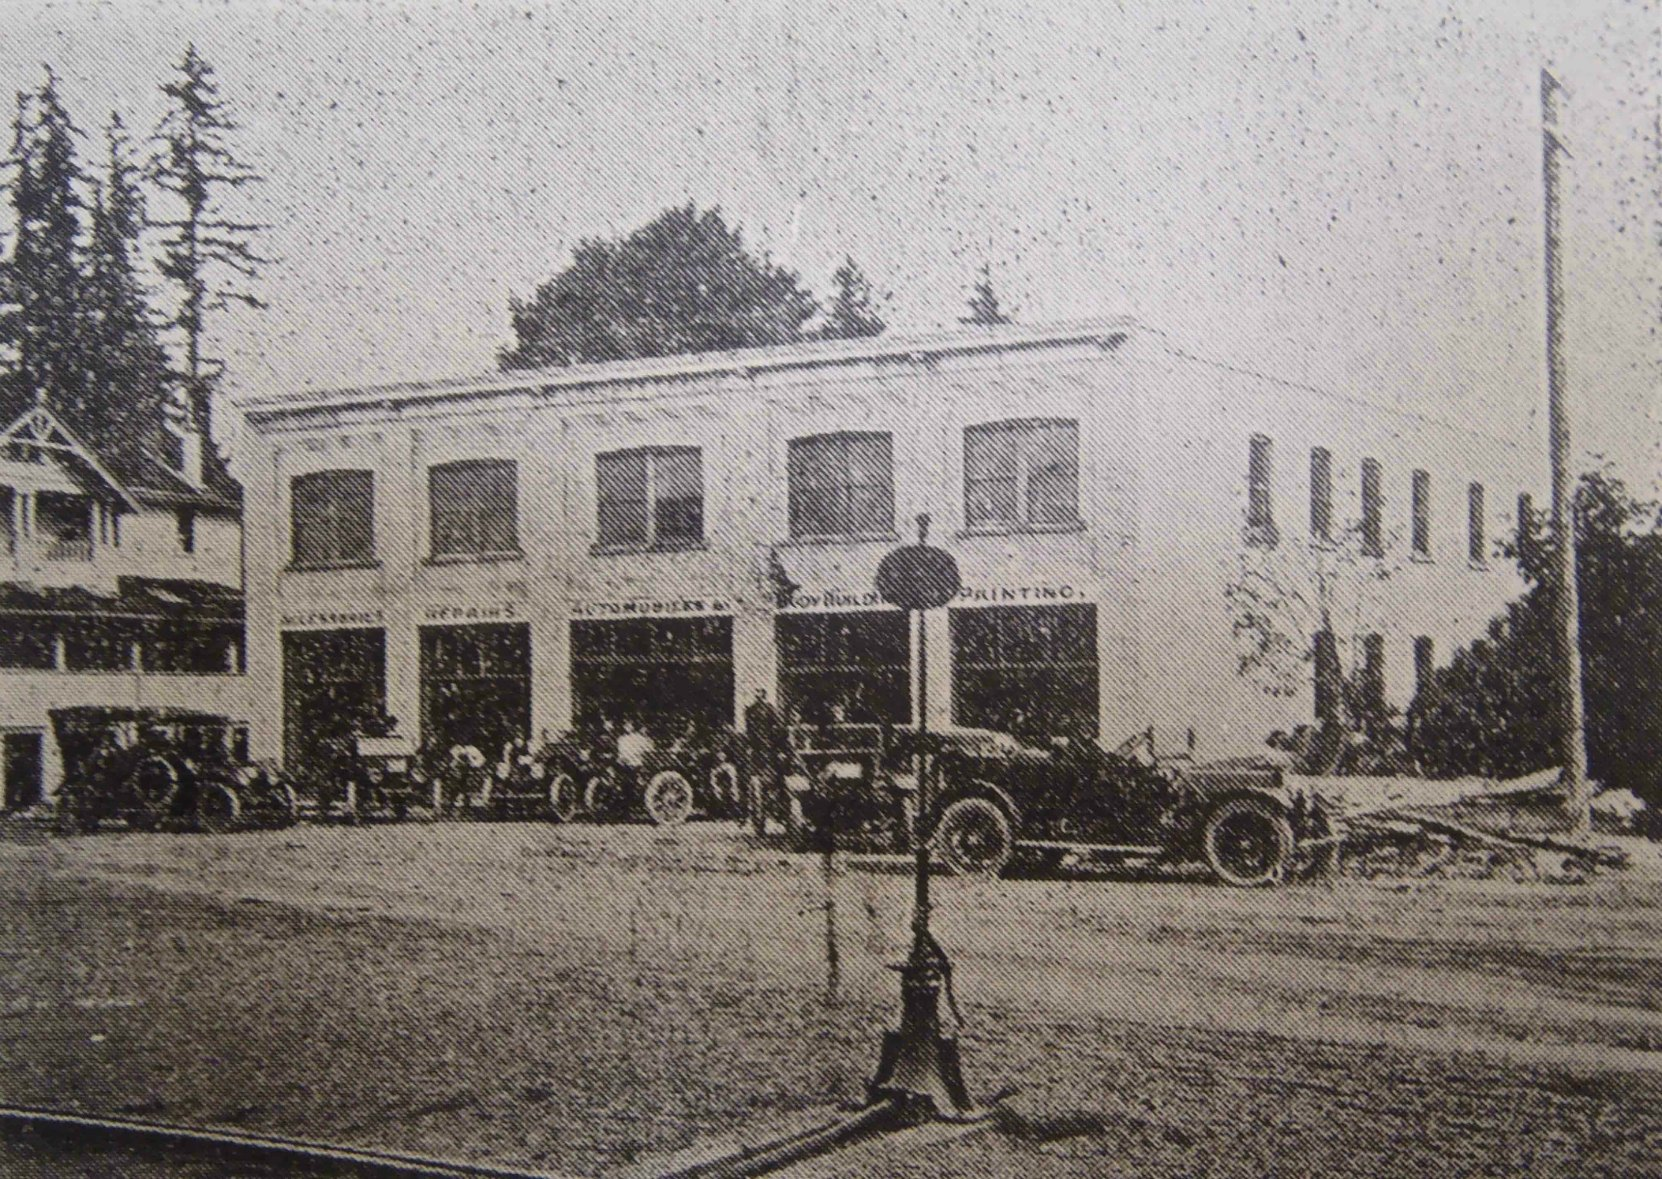 The Duncan Garage in 1913. This photograph appeared in the local Cowichan Leader newspaper